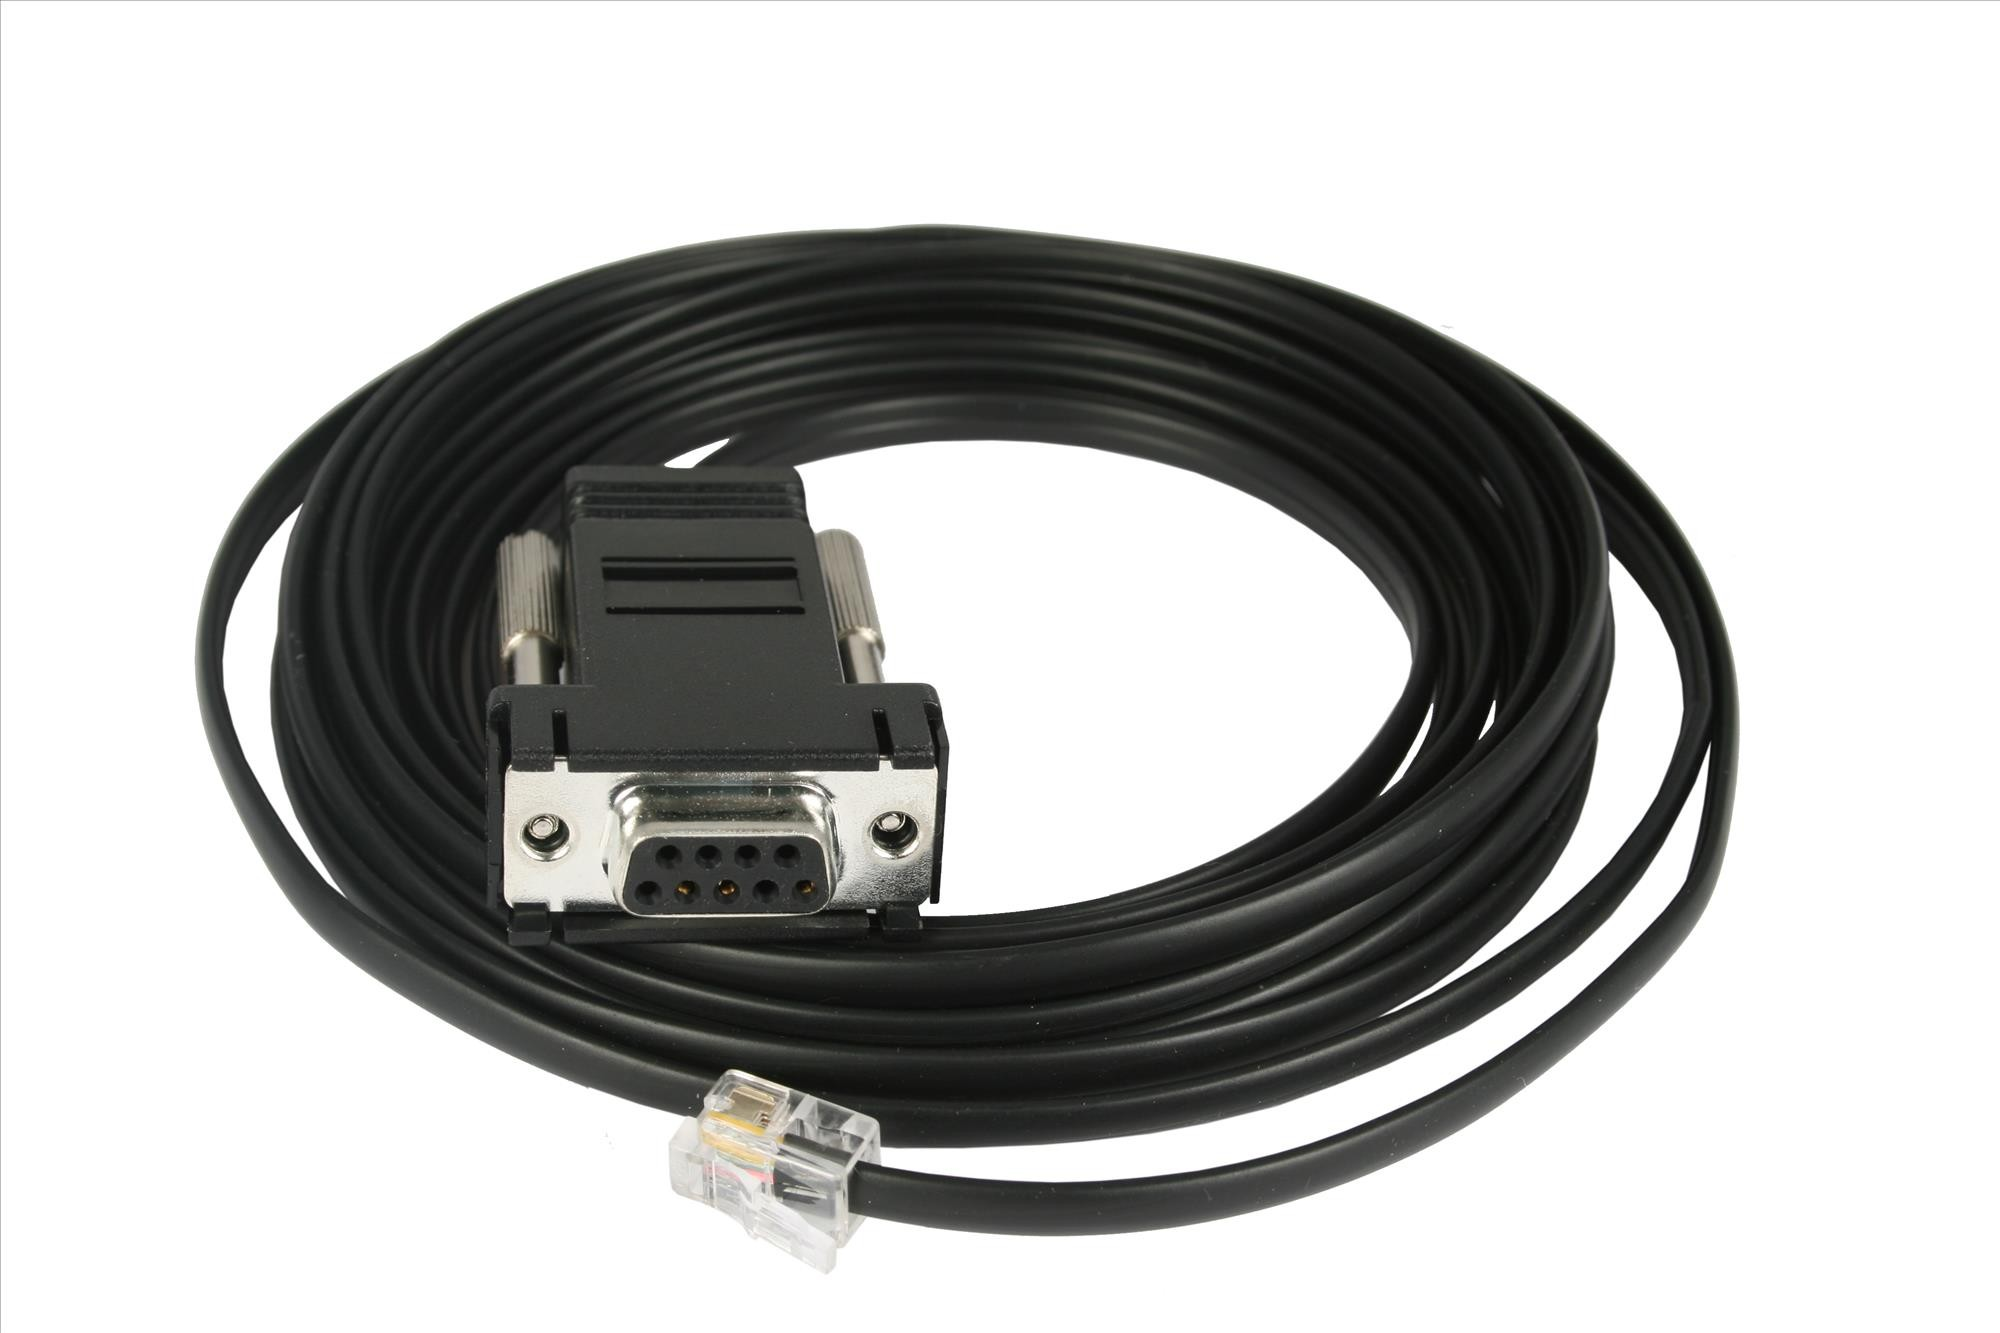 Baader RS 232/RJ11 Cable 3.5M for Celestron